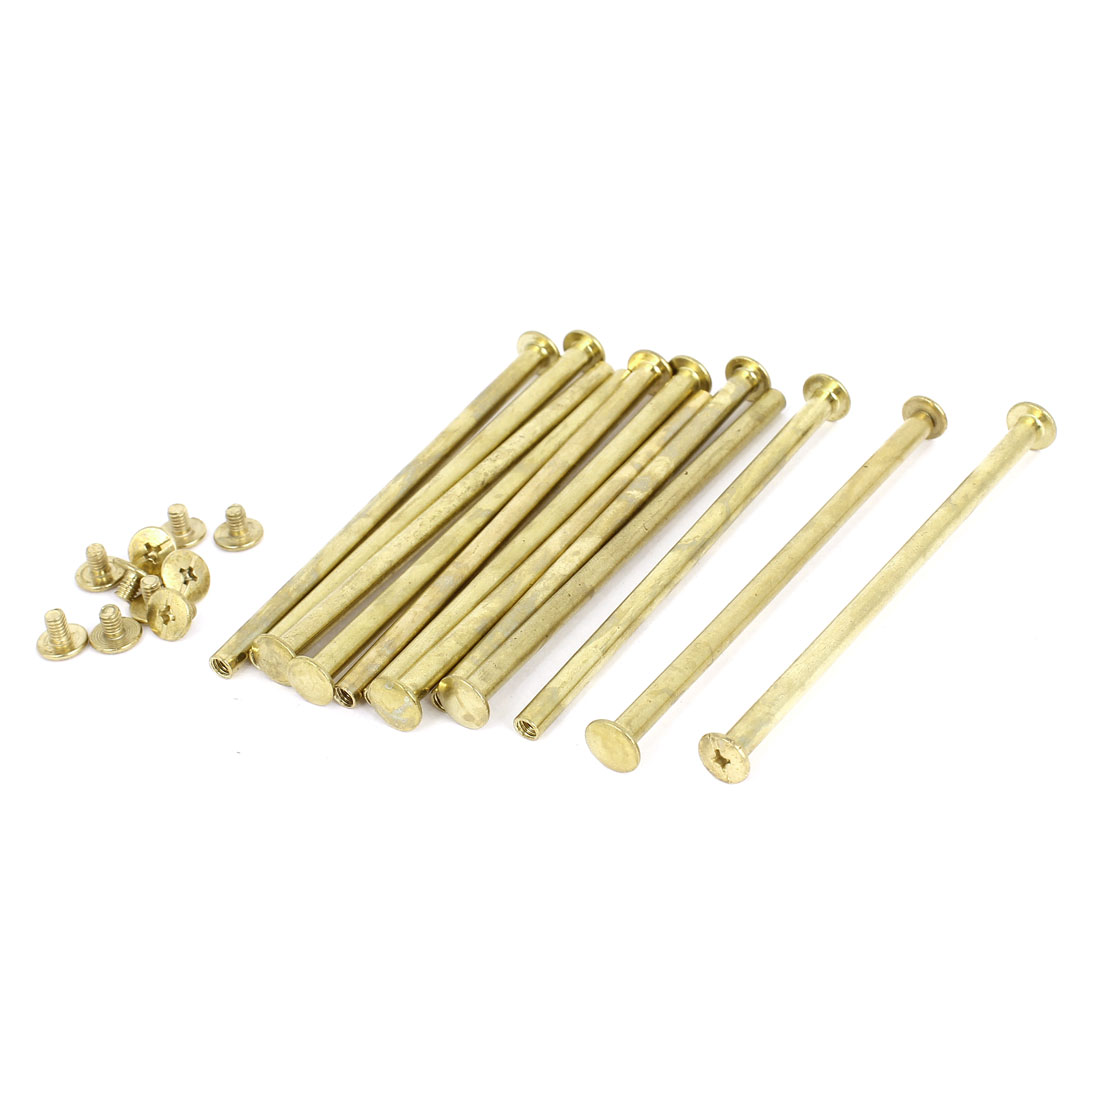 Brass Plated 5x100mm Binding Chicago Screw Post 12pcs for Albums Scrapbook